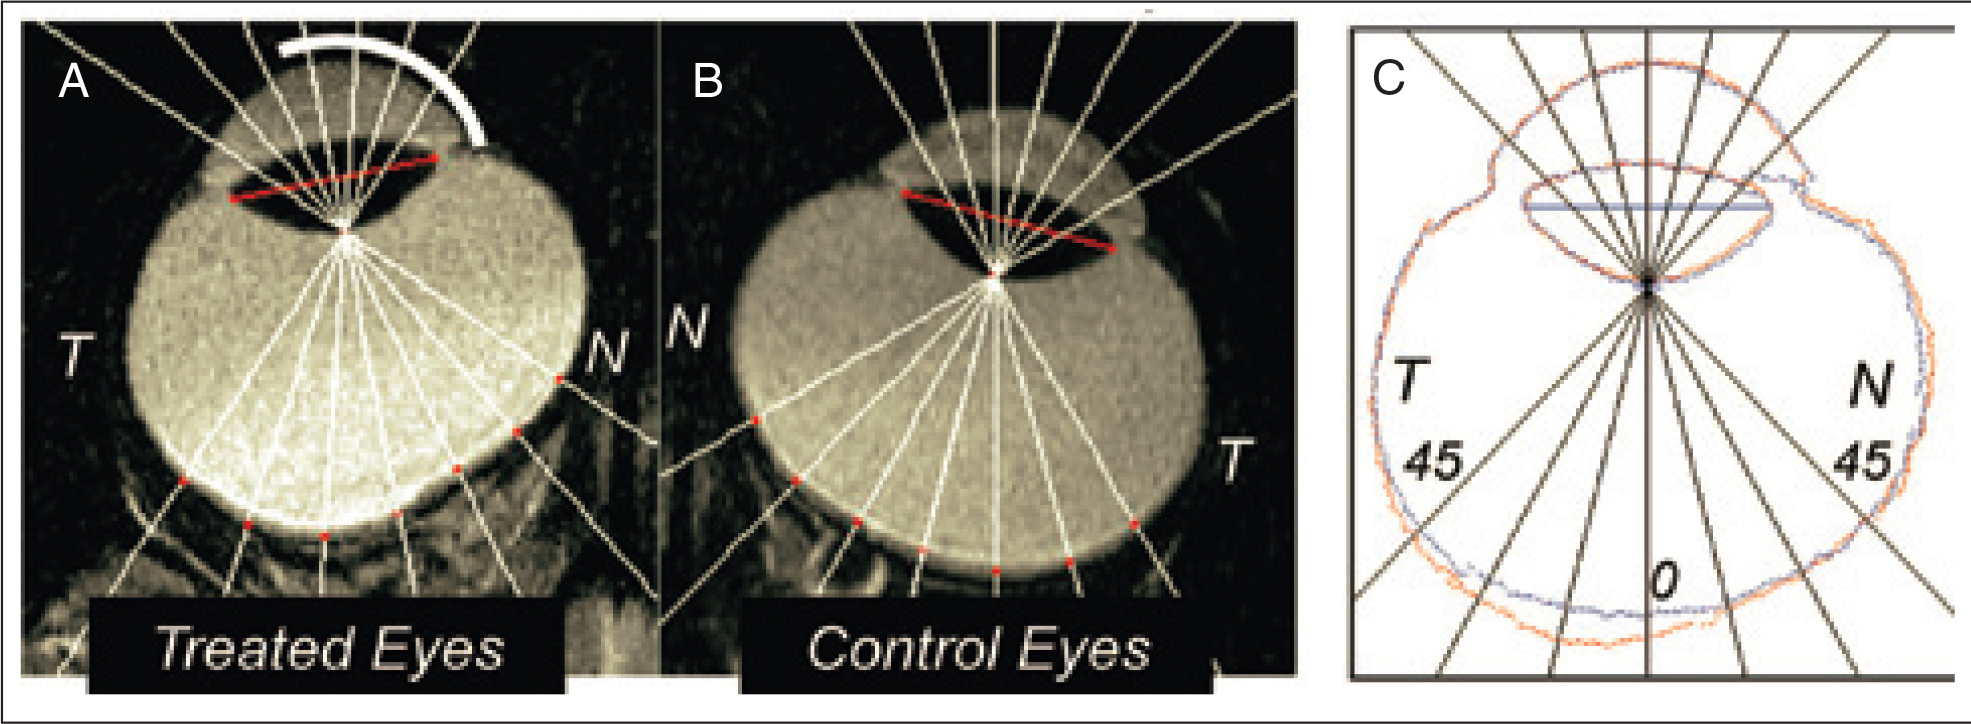 Monocular, nasal translucent lenses are placed in front of a monkey's (A) left eye (treated eye) while the (B) right eye serves as a control. The translucent lens could be replaced with a minus lens with similar results. The temporal portion of the left eye elongates as a result of the altered visual stimulation. (C) The difference between the right and left eye, showing the amount of regional elongation of the left eye. This would occur even if the optic nerve is cut, but would not occur if atropine is injected into the eye. Reprinted with permission from Smith EL 3rd. Prentice award lecture 2010: a case for peripheral optical treatment strategies for myopia. Optom Vis Sci. 2011;88:1029–1044.